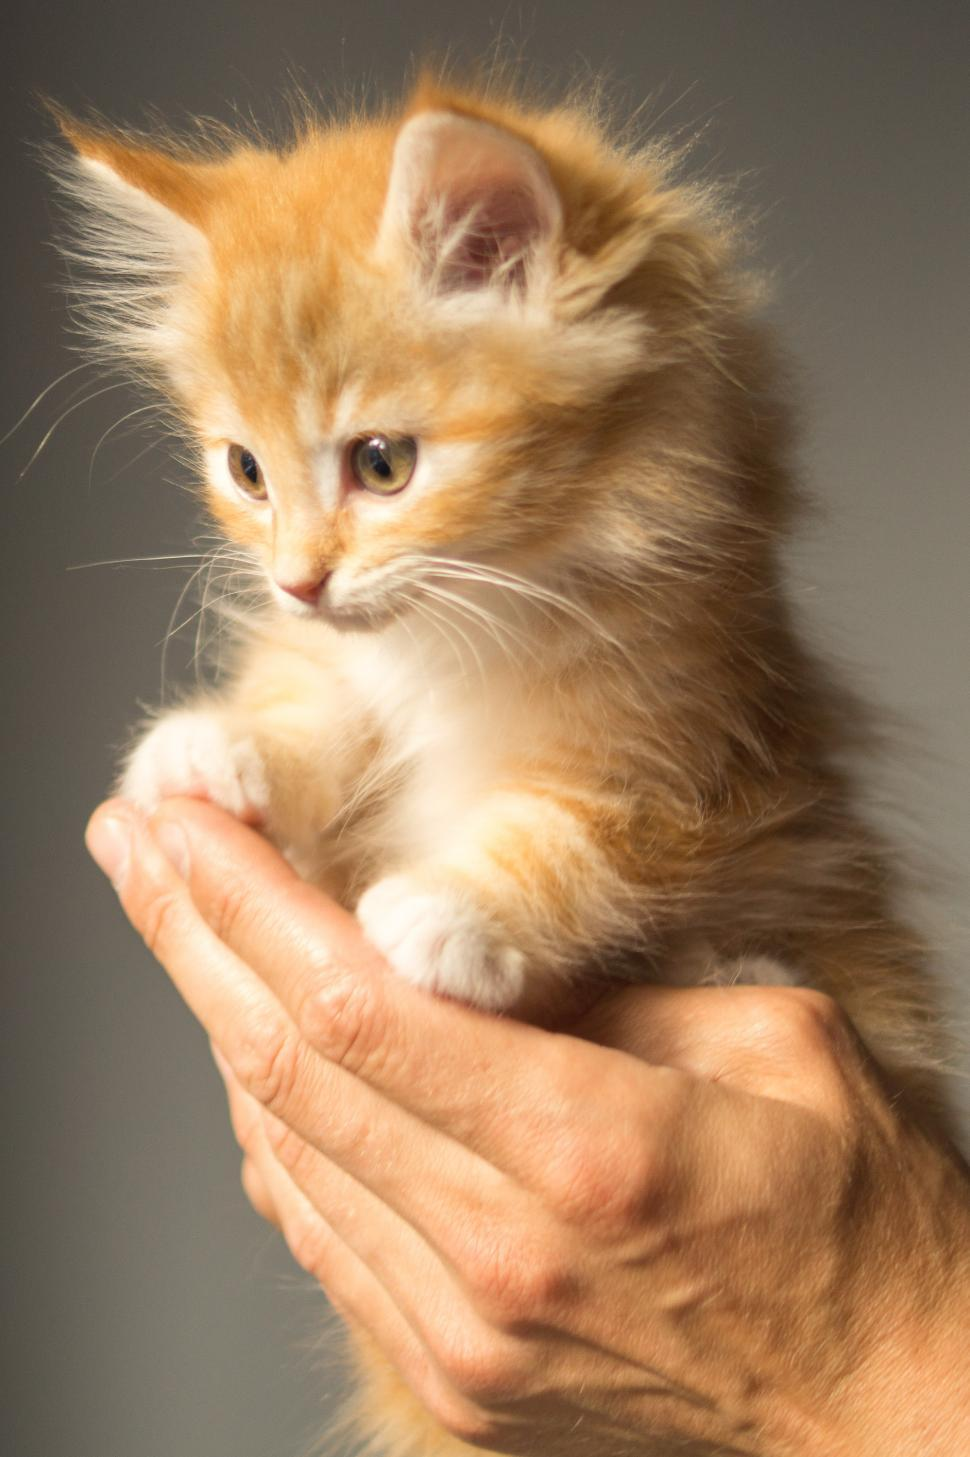 Download Free Stock Photo of Cute orange kitten